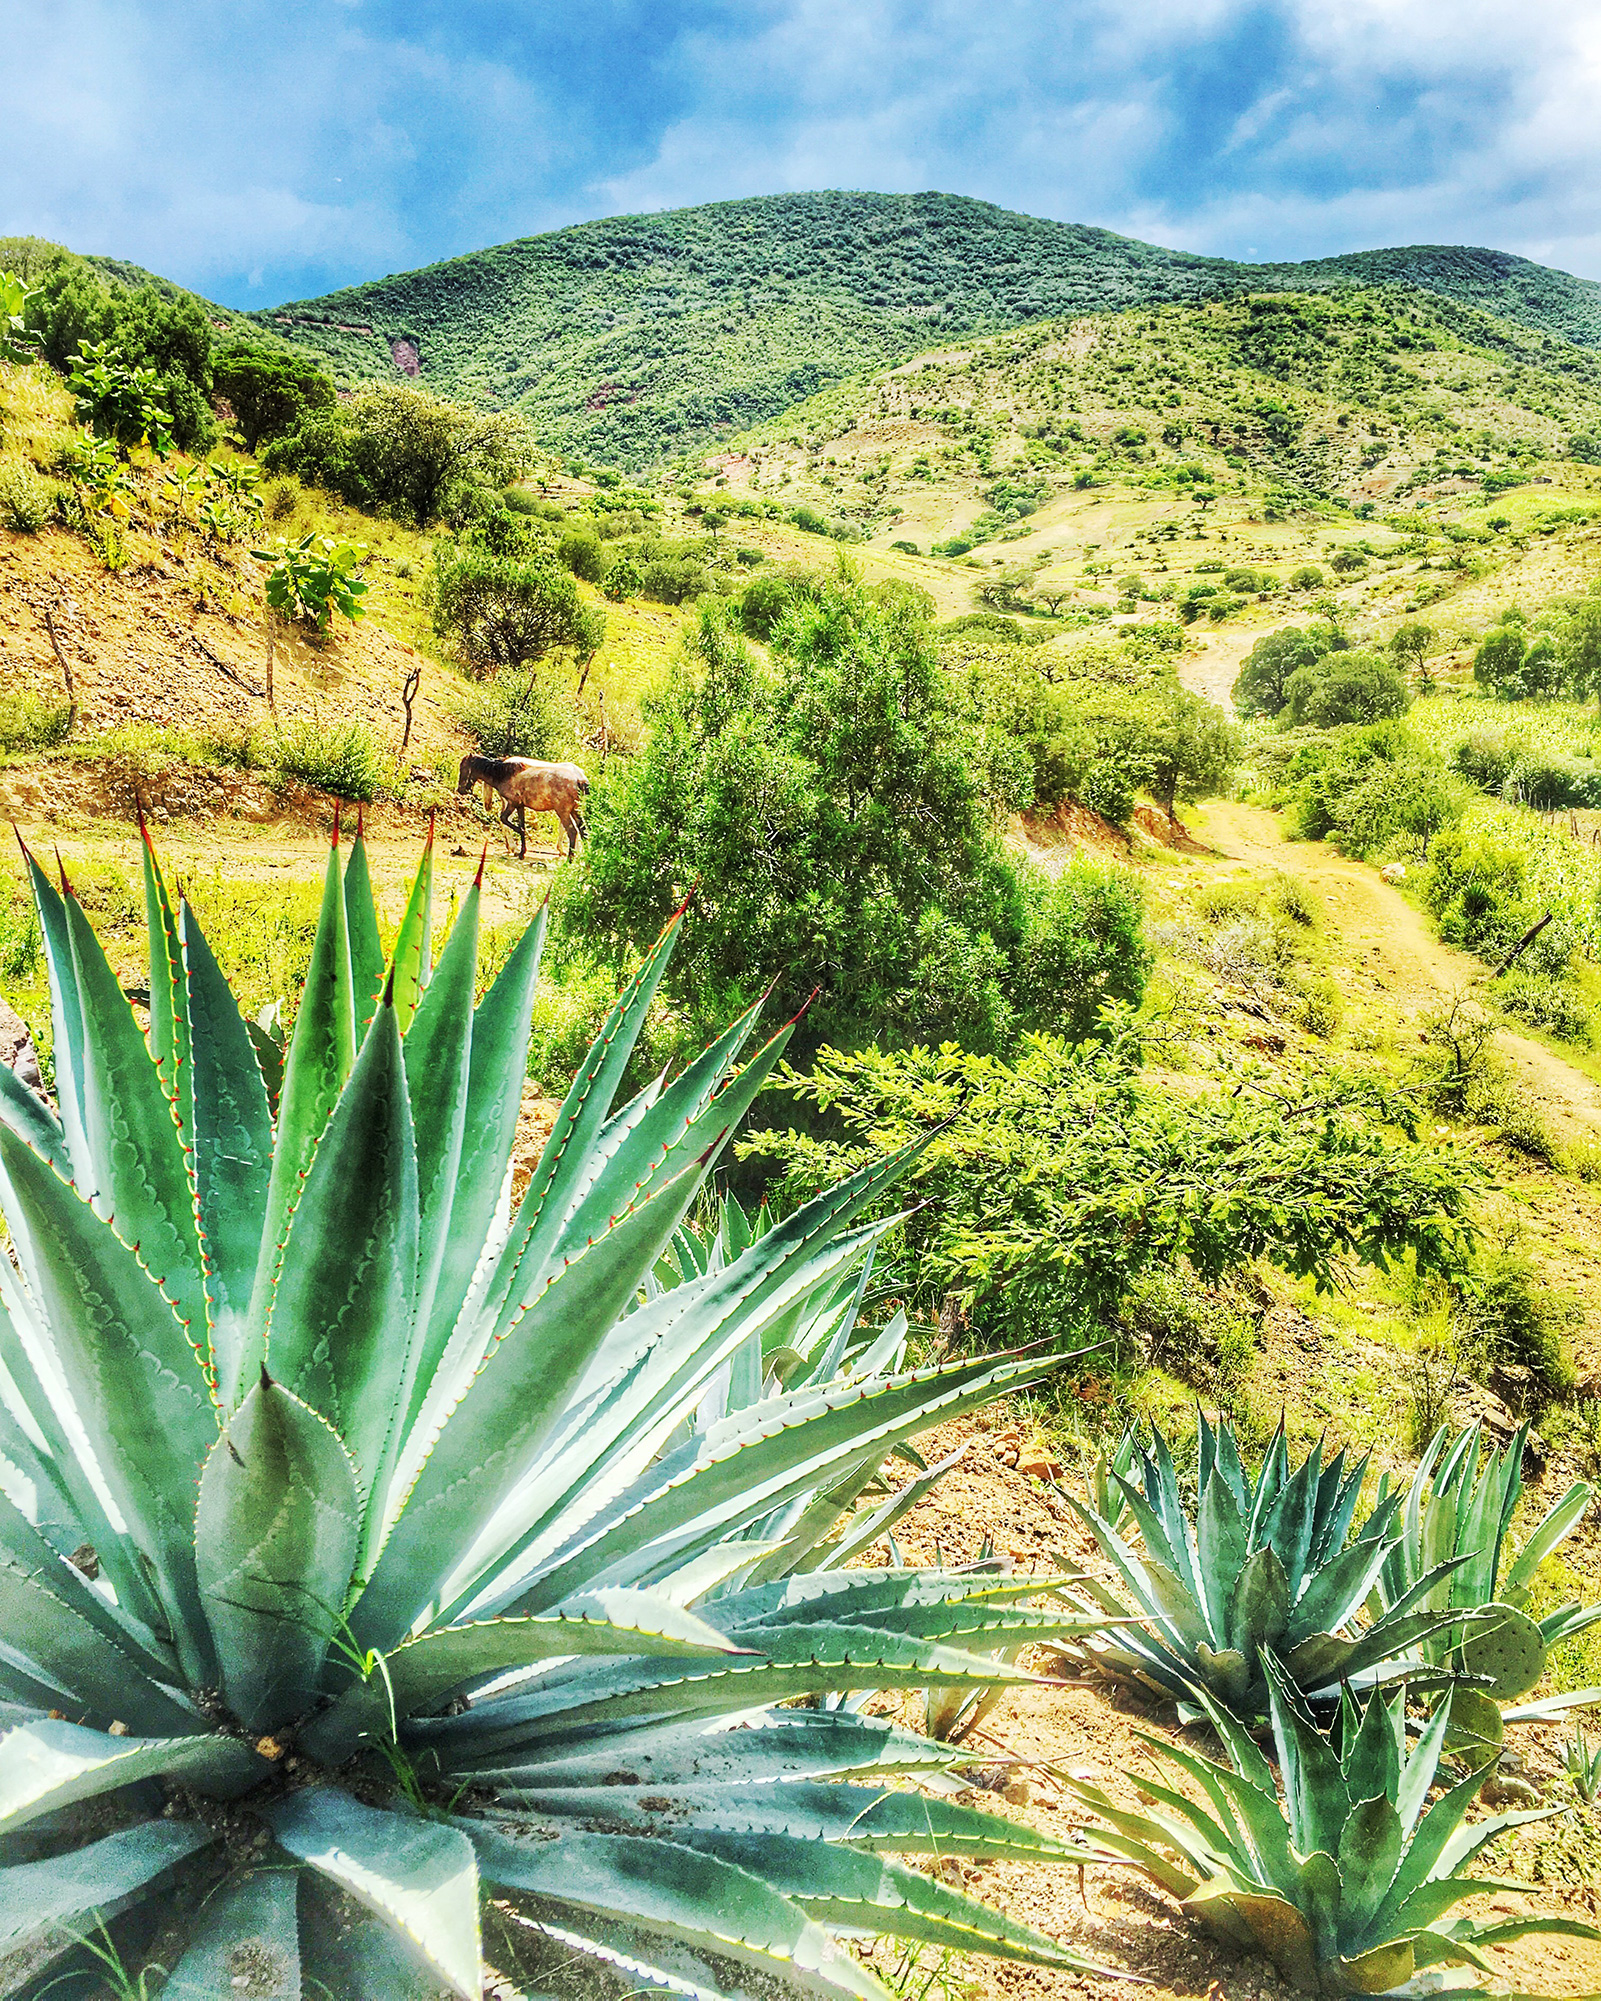 Agave Growing in Oaxaca